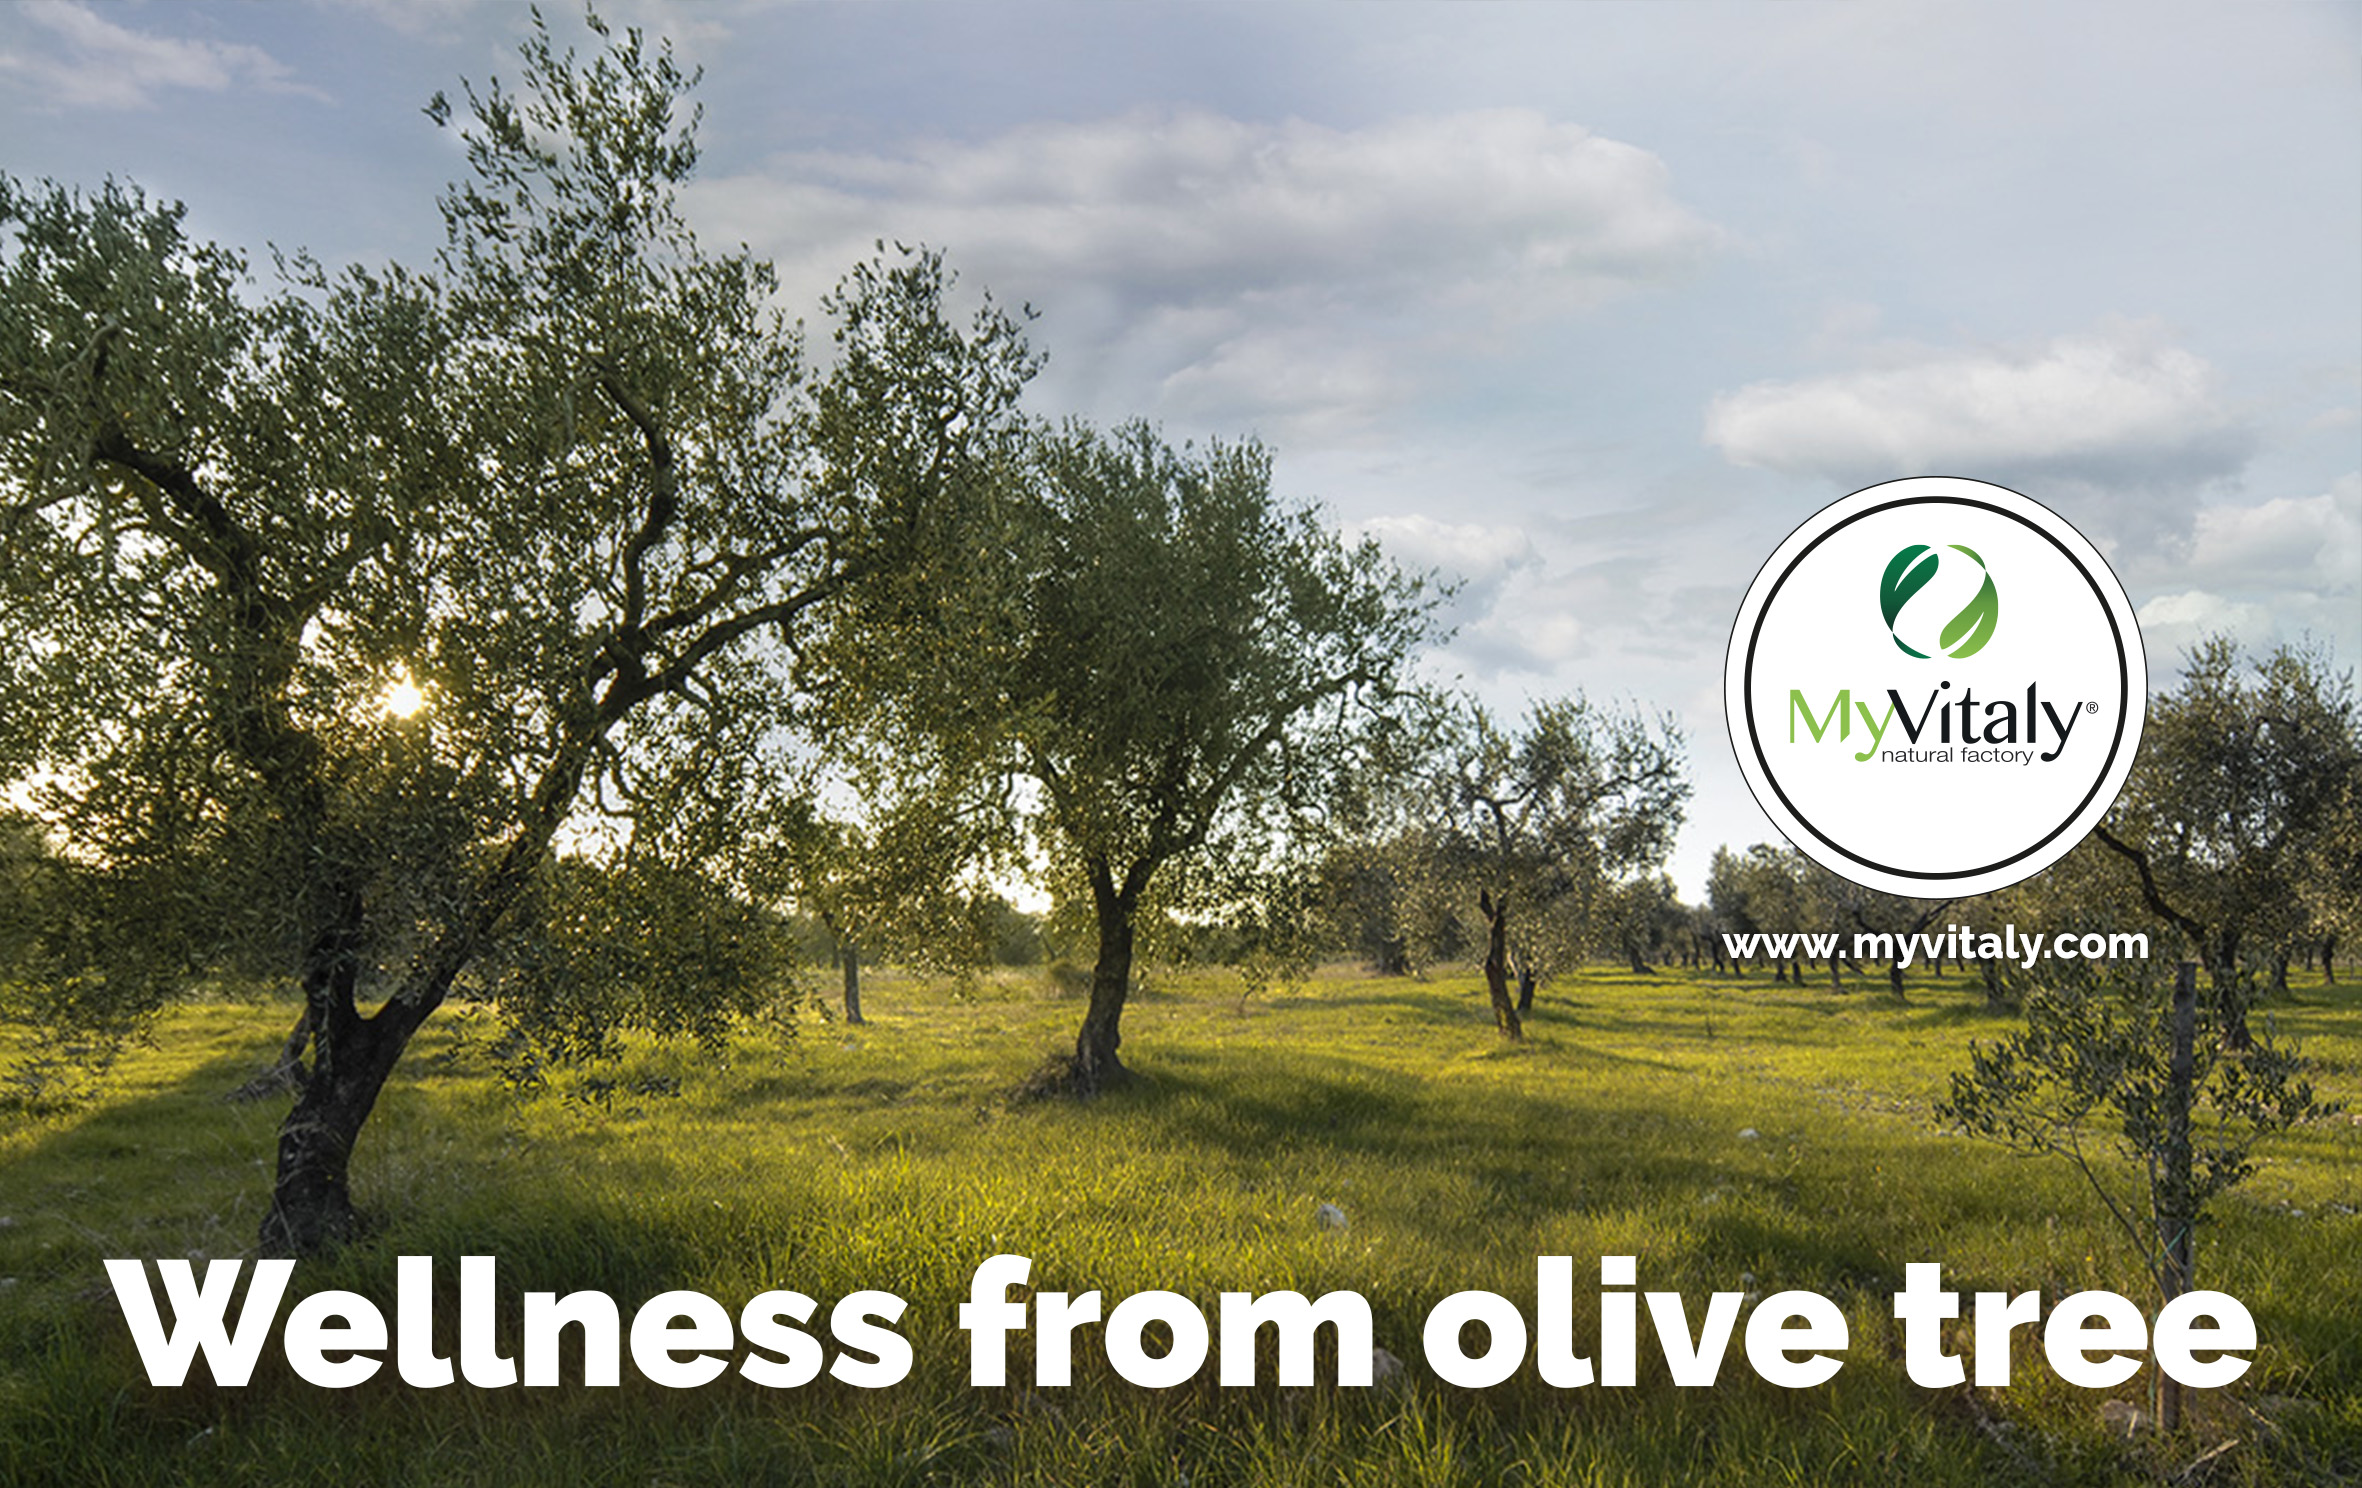 Olive_Trees_Italy_Greece_IMAGE_EN